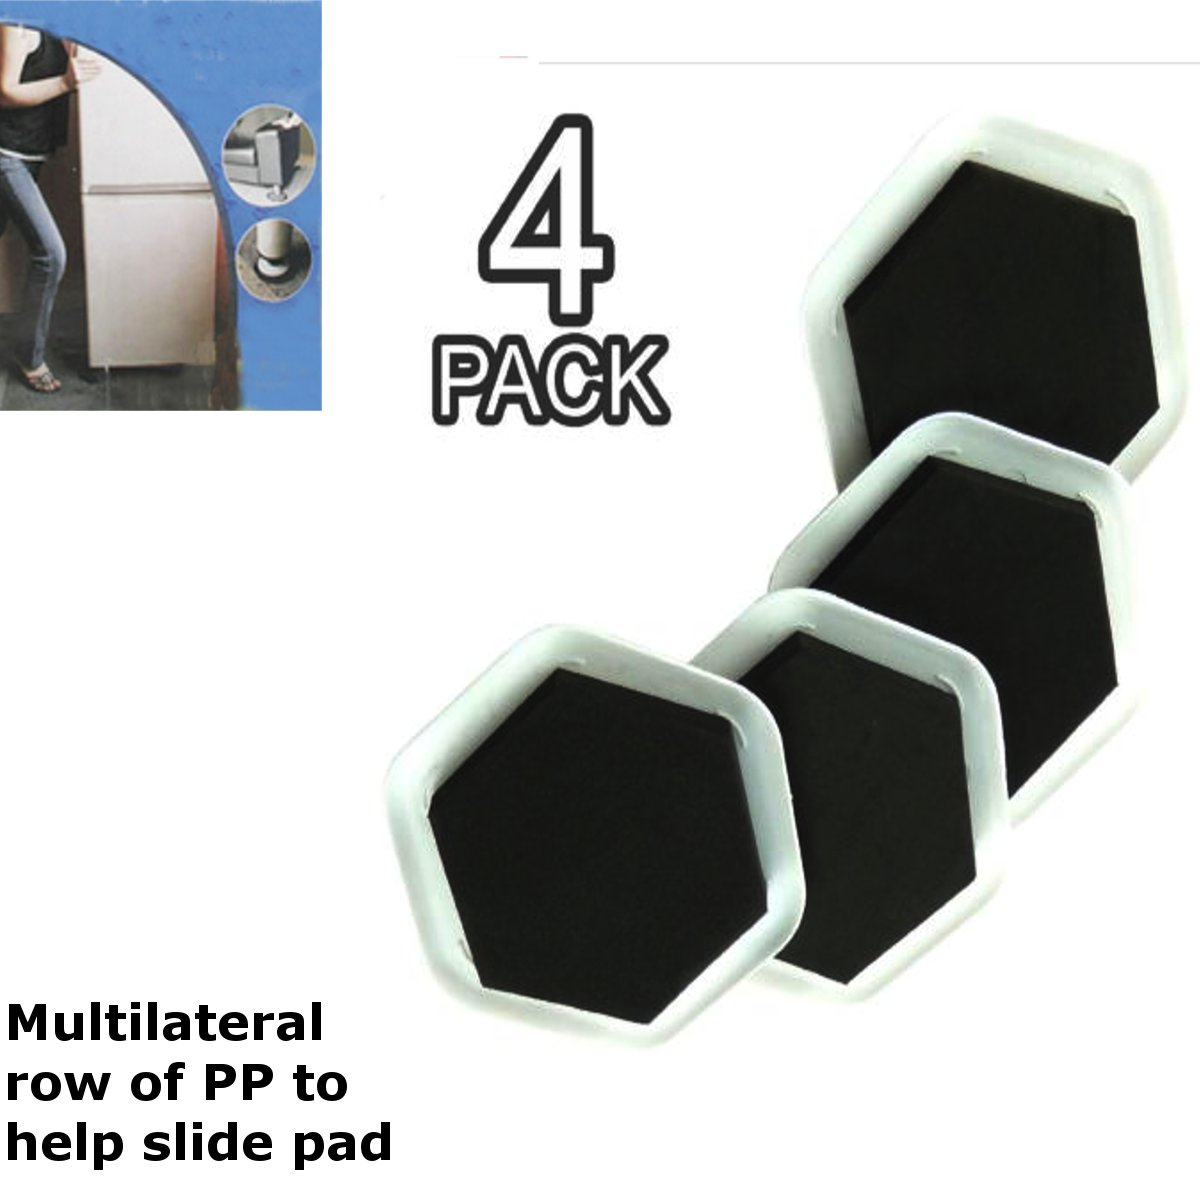 4Pcs Heavy Duty Furniture Moving Sliders Table Moving Pads Floor Protectors House Moving Helper Easy Moving Accessories4Pcs Heavy Duty Furniture Moving Sliders Table Moving Pads Floor Protectors House Moving Helper Easy Moving Accessories